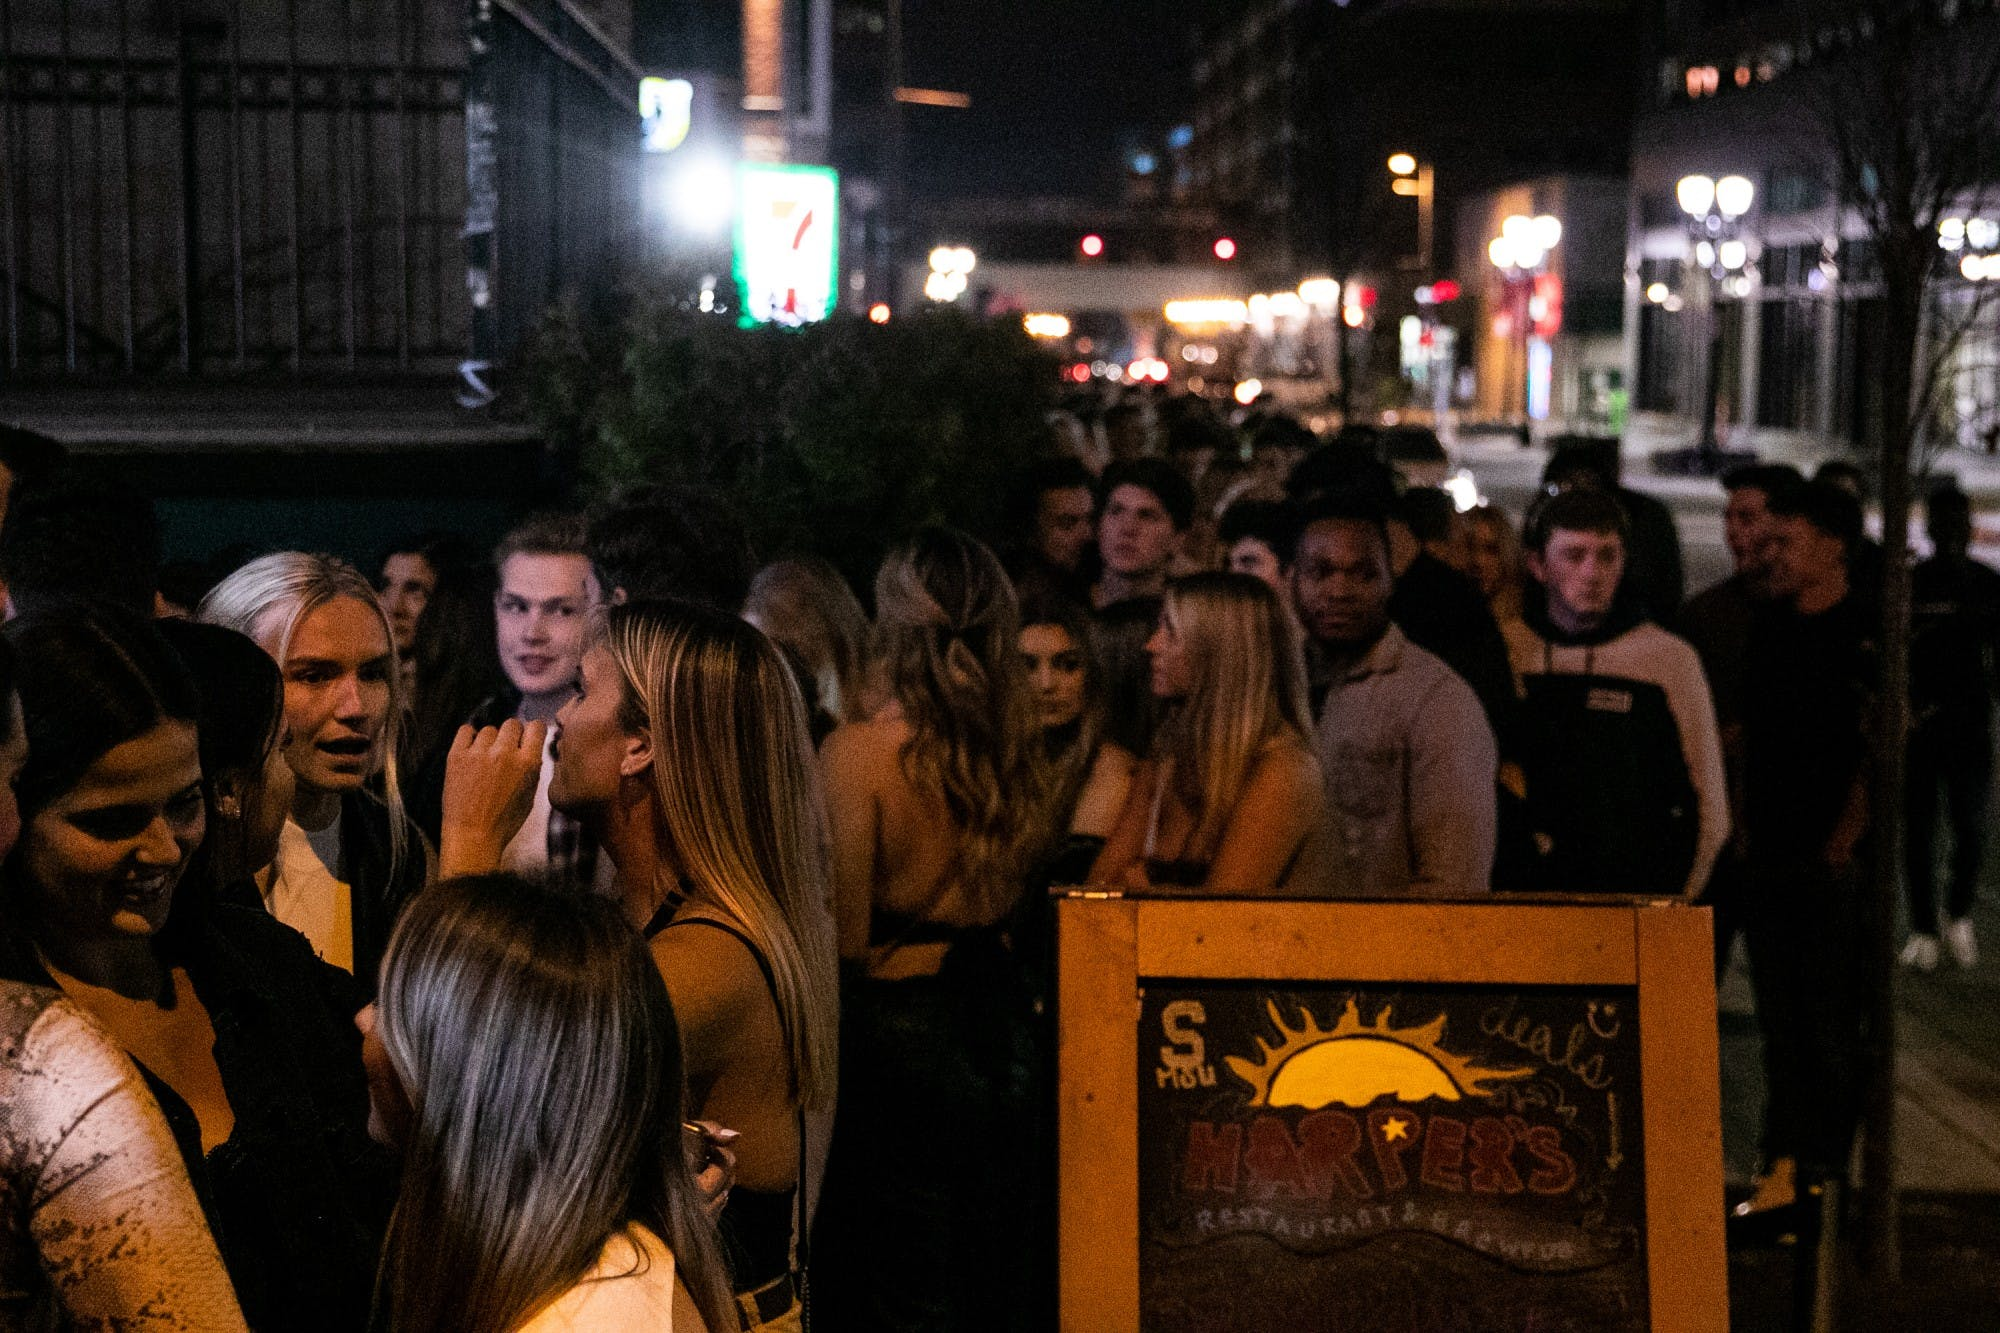 Young adults talk with each other in groups as they wait in a line. Next to the line is a sign that reads 'Harper's Restaurant and Brewpub.' Behind the line are city lights at night.'